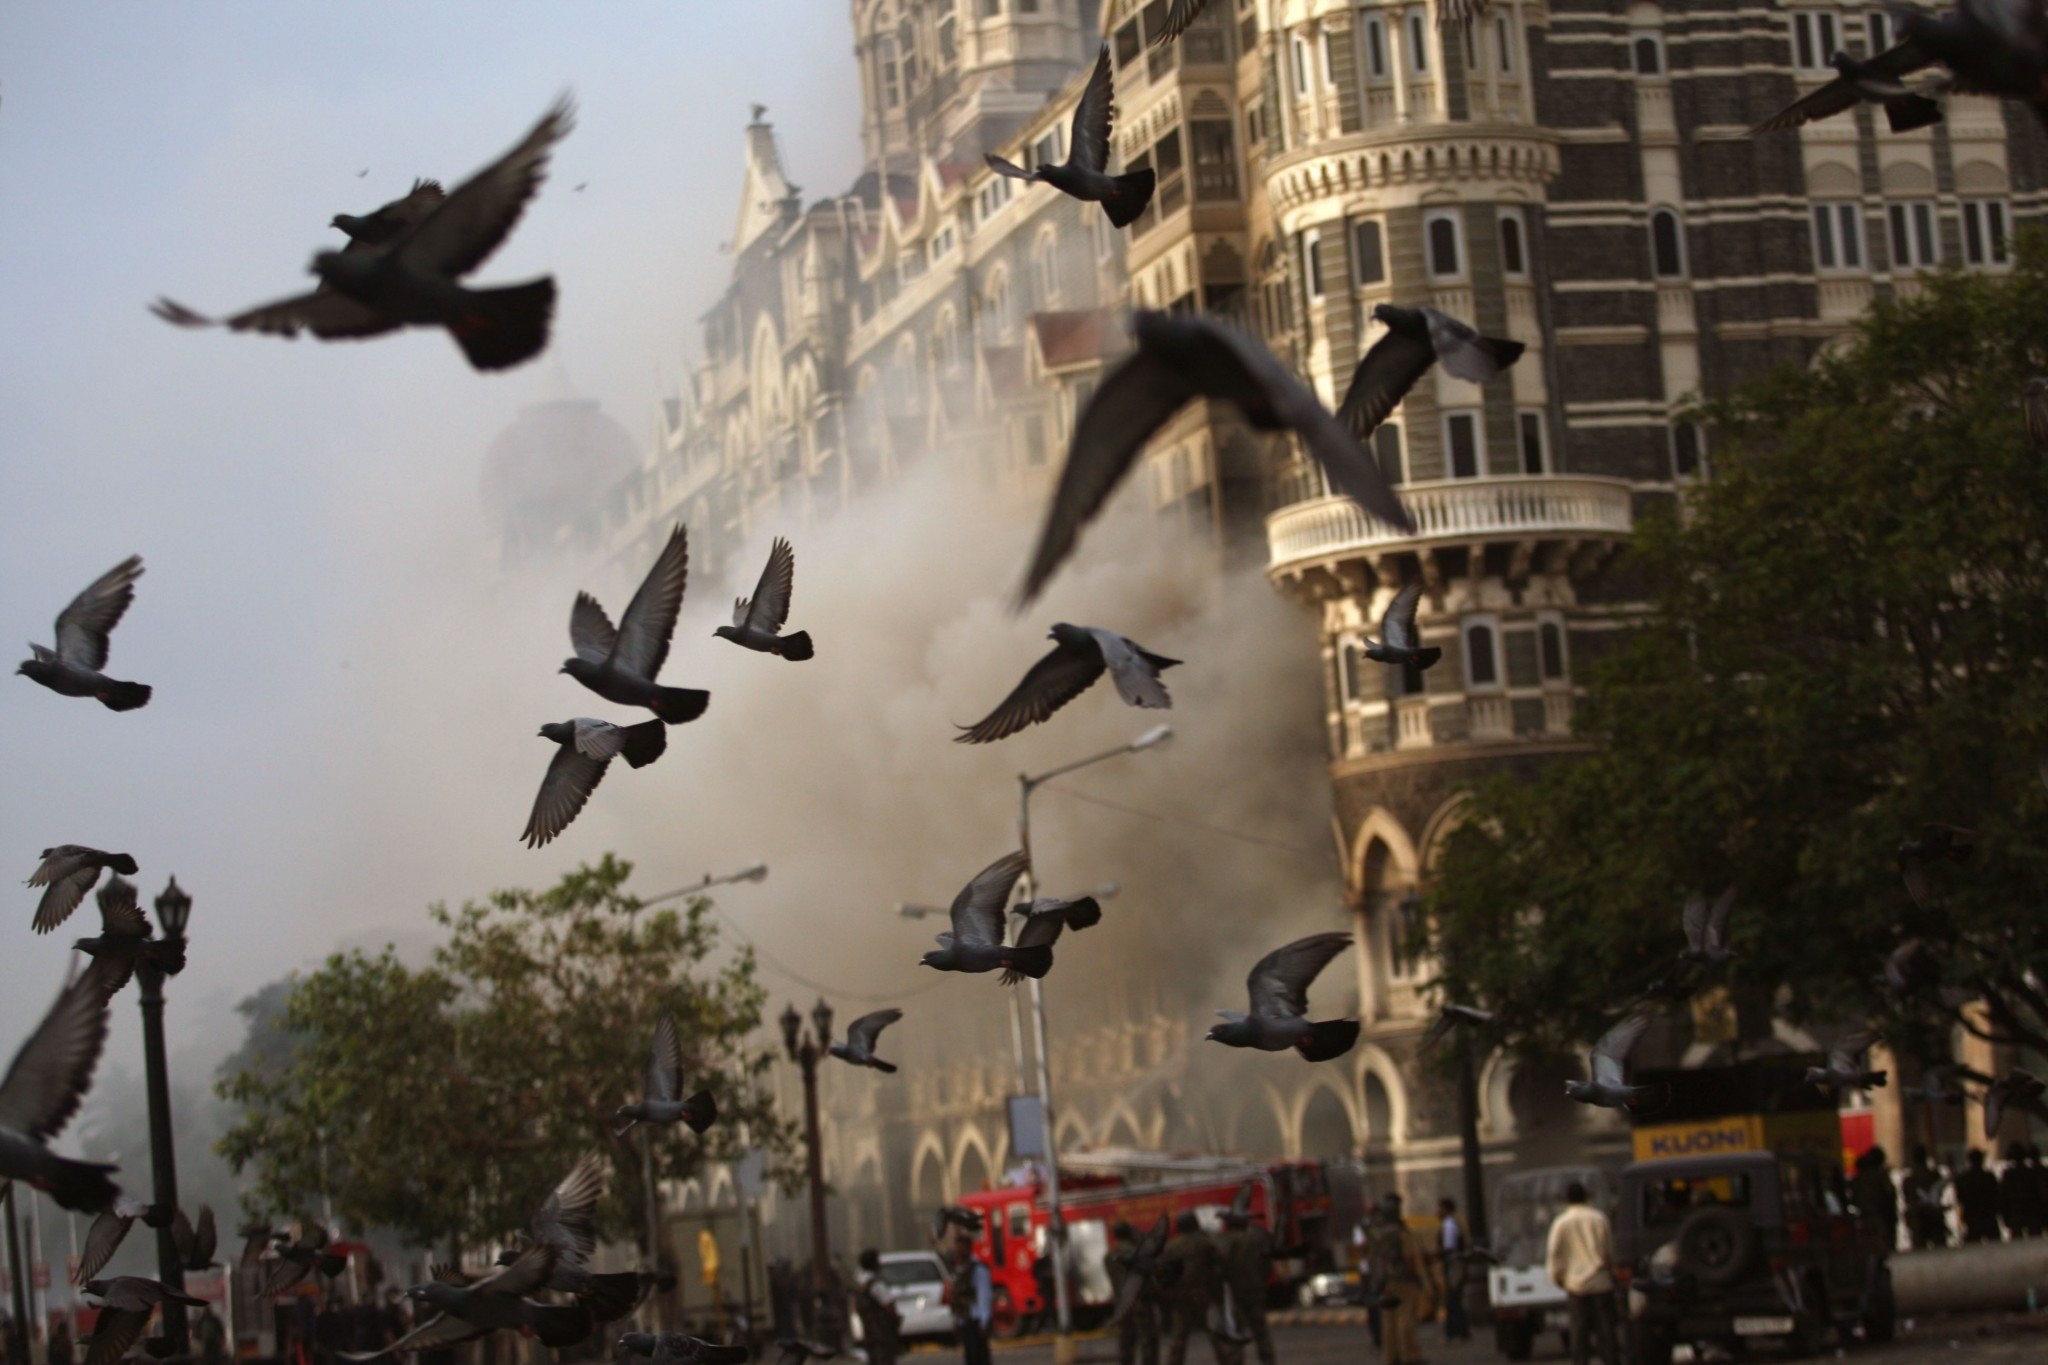 MUMBAI (BOMBAY), INDIA - NOVEMBER 29: (ISRAEL OUT) Birds fly over a fire as it burns at Taj Mahal Palace & Tower Hotel following an armed siege on November 29, 2008 in Mumbai, India. Indian officials have declared the siege at the Taj hotel over as the remaining militants were killed when commandos stormed the building. The city of Mumbai was rocked by multiple coordinated terrorist attacks that targeted locations popular with foreigners, late on November 26, killing at least 195 people. (Photo by Uriel Sinai/Getty Images)